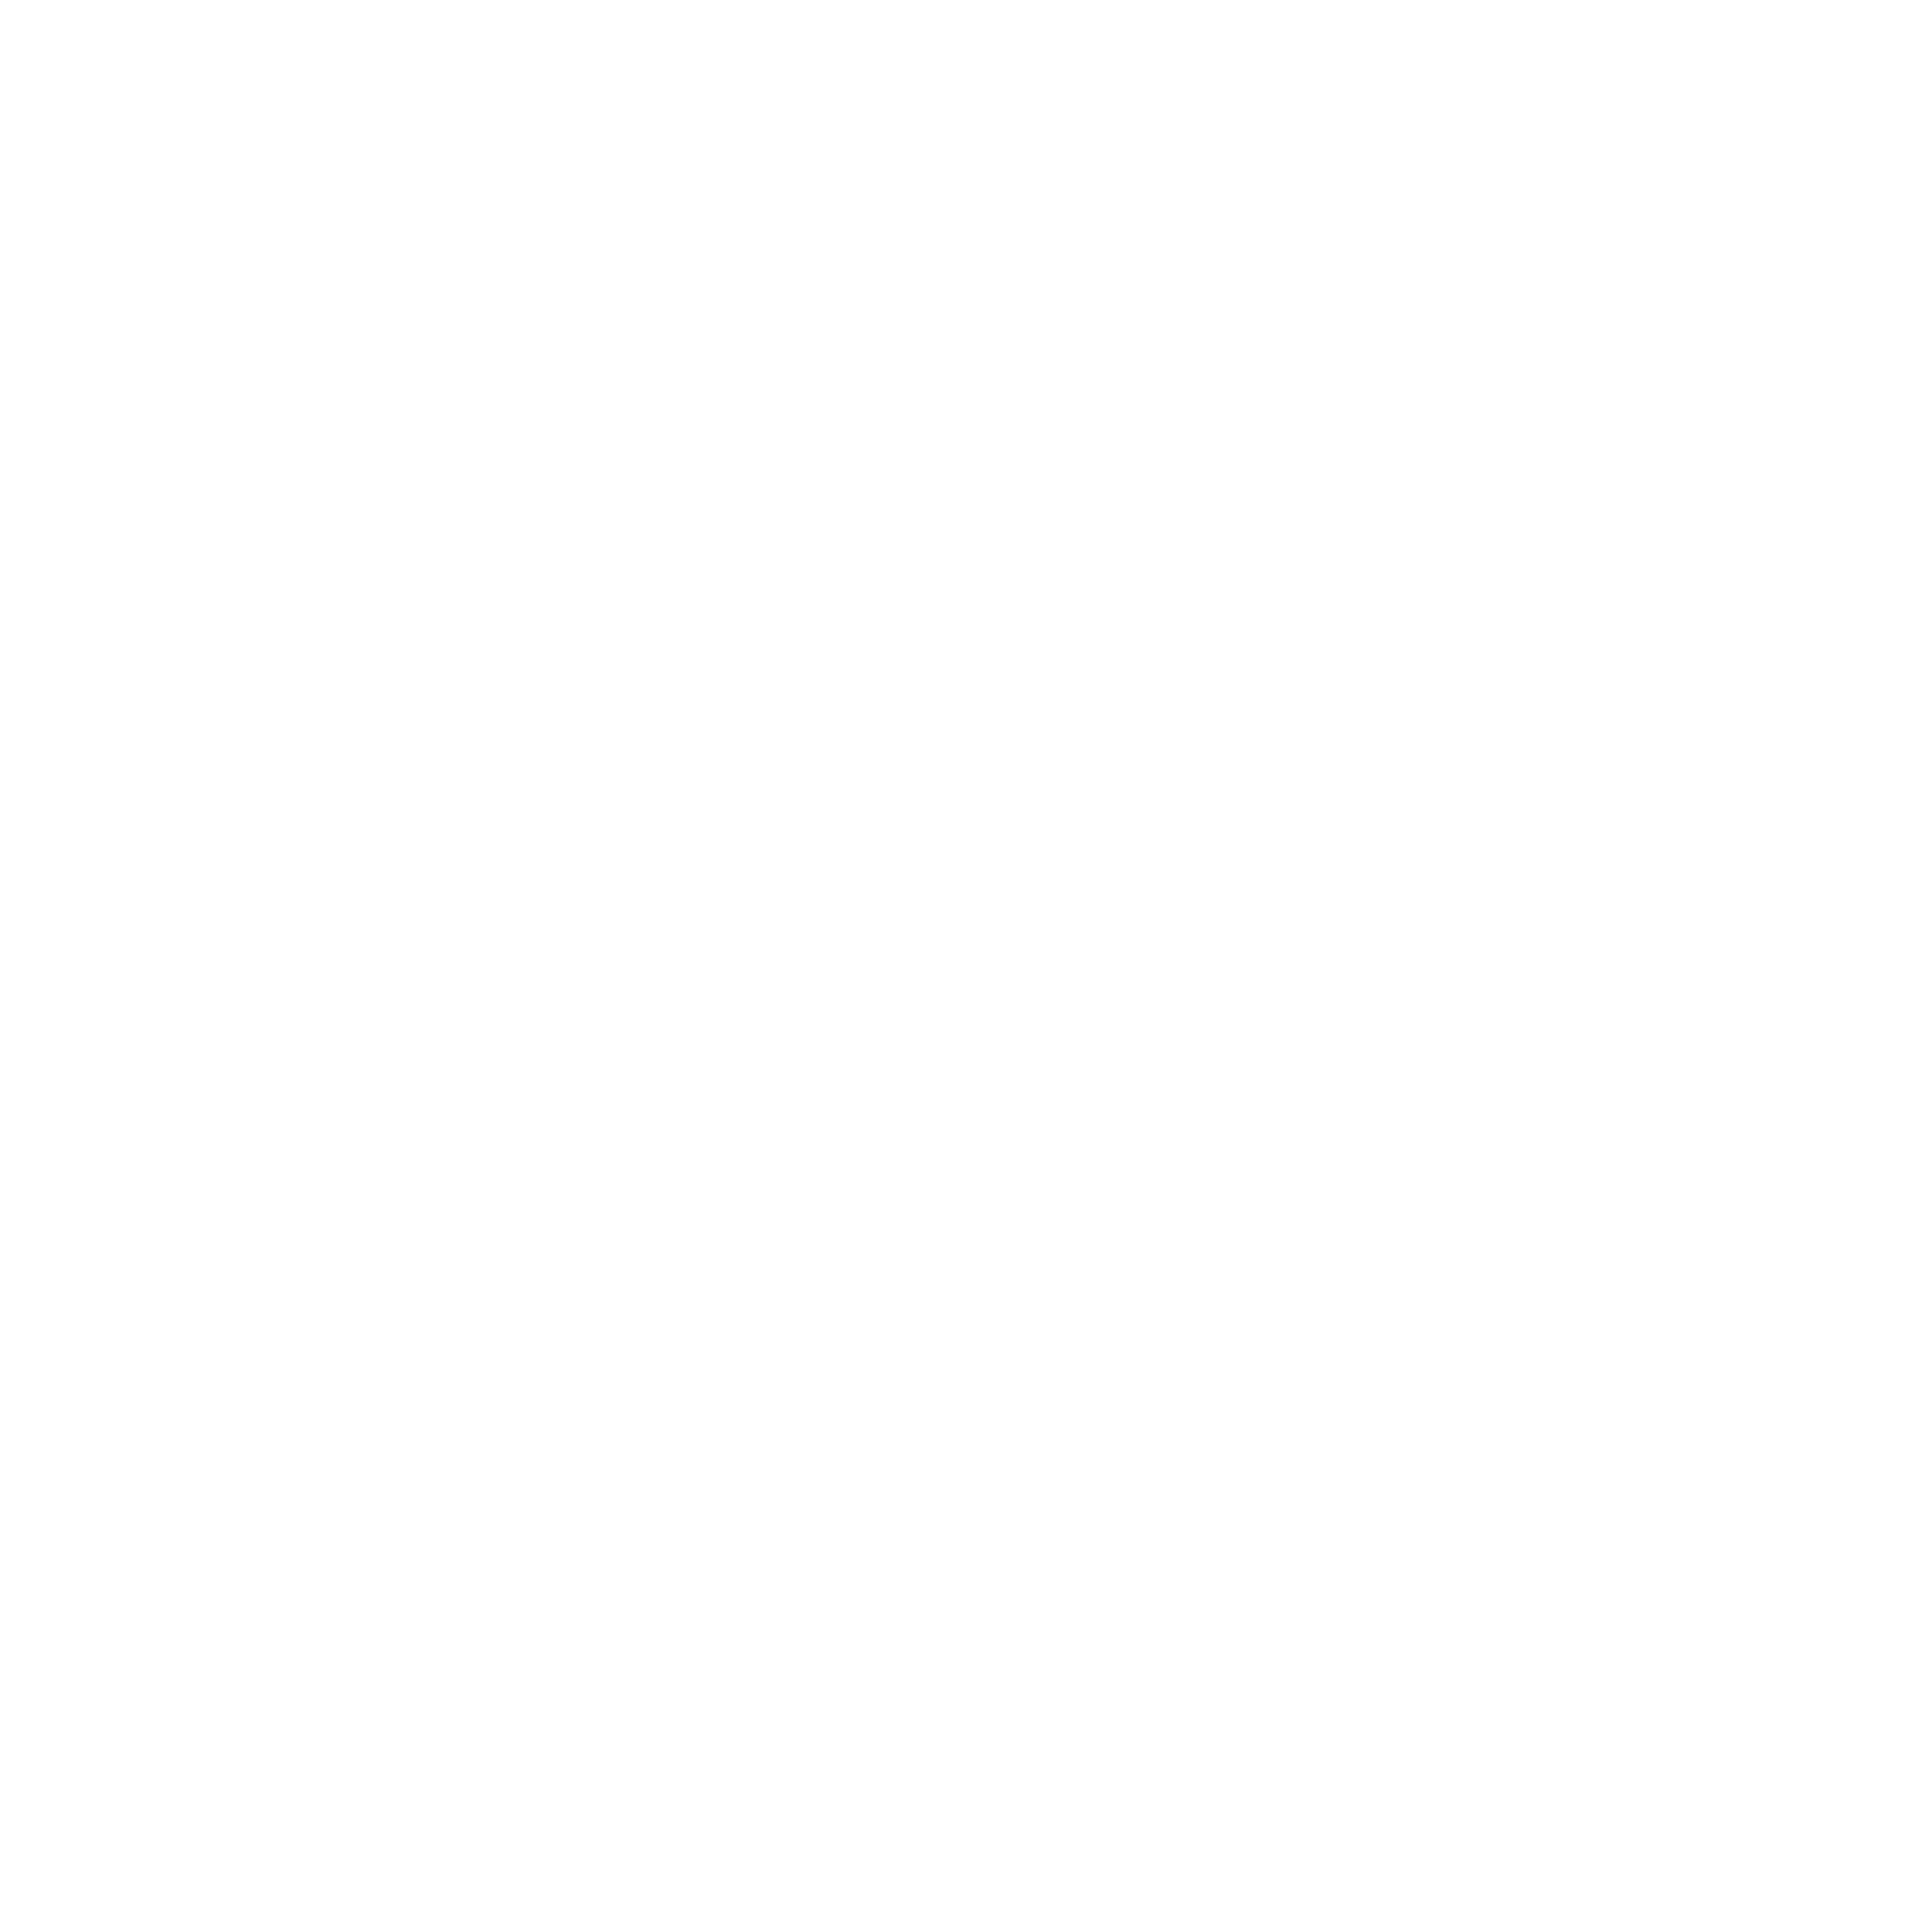 JP-Icon-White.png